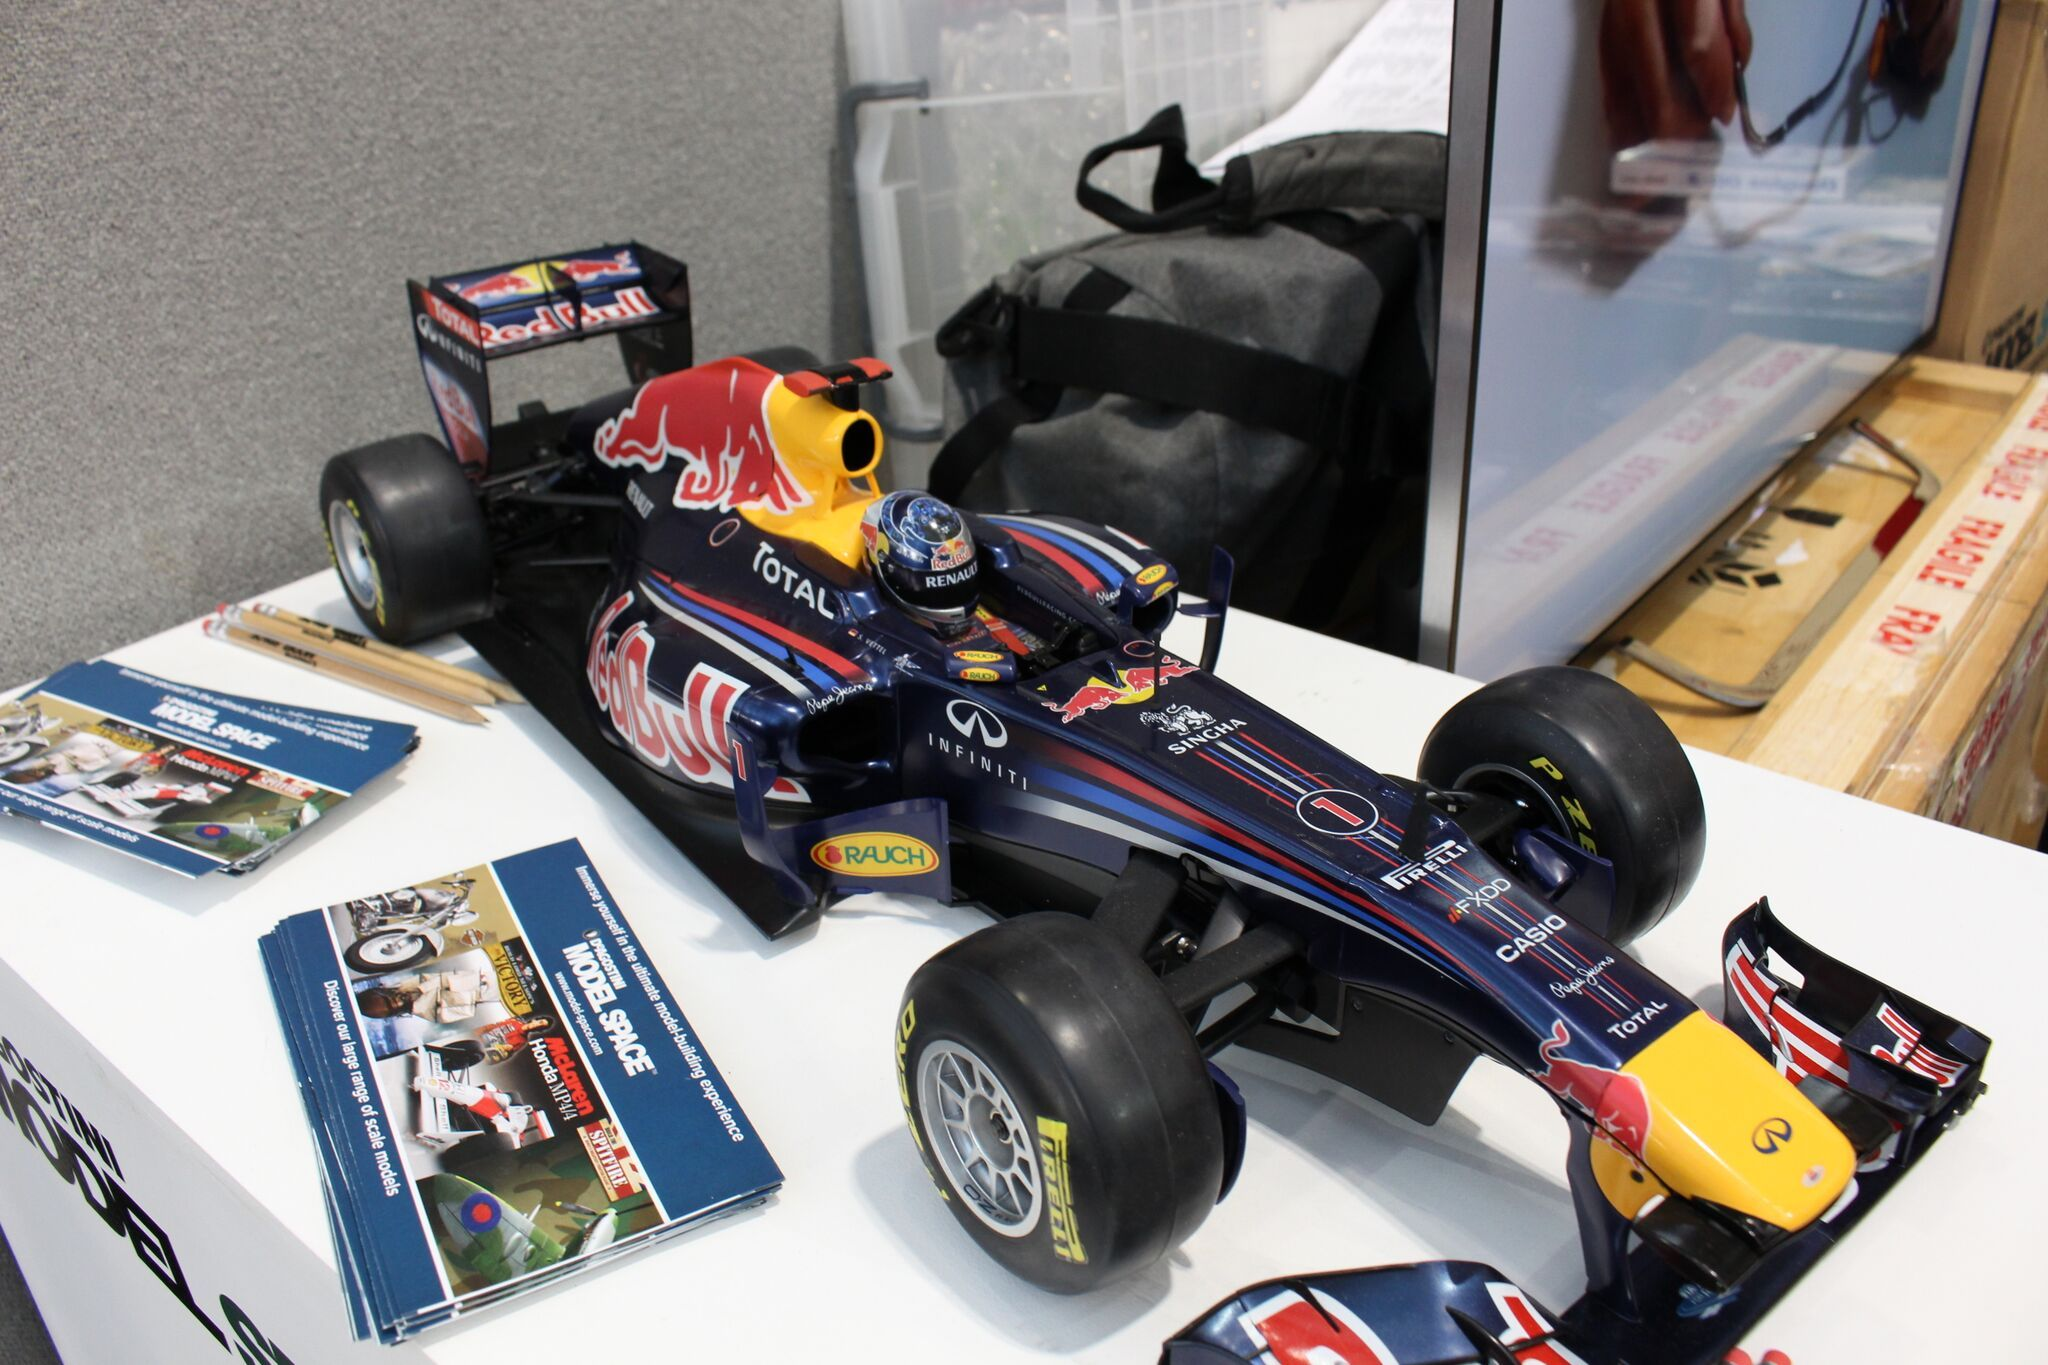 Using exhaust gases to improve rear downforce and grip, the RB7's performance in slow speed corners resulted in Vettel winning the world championship in 2011